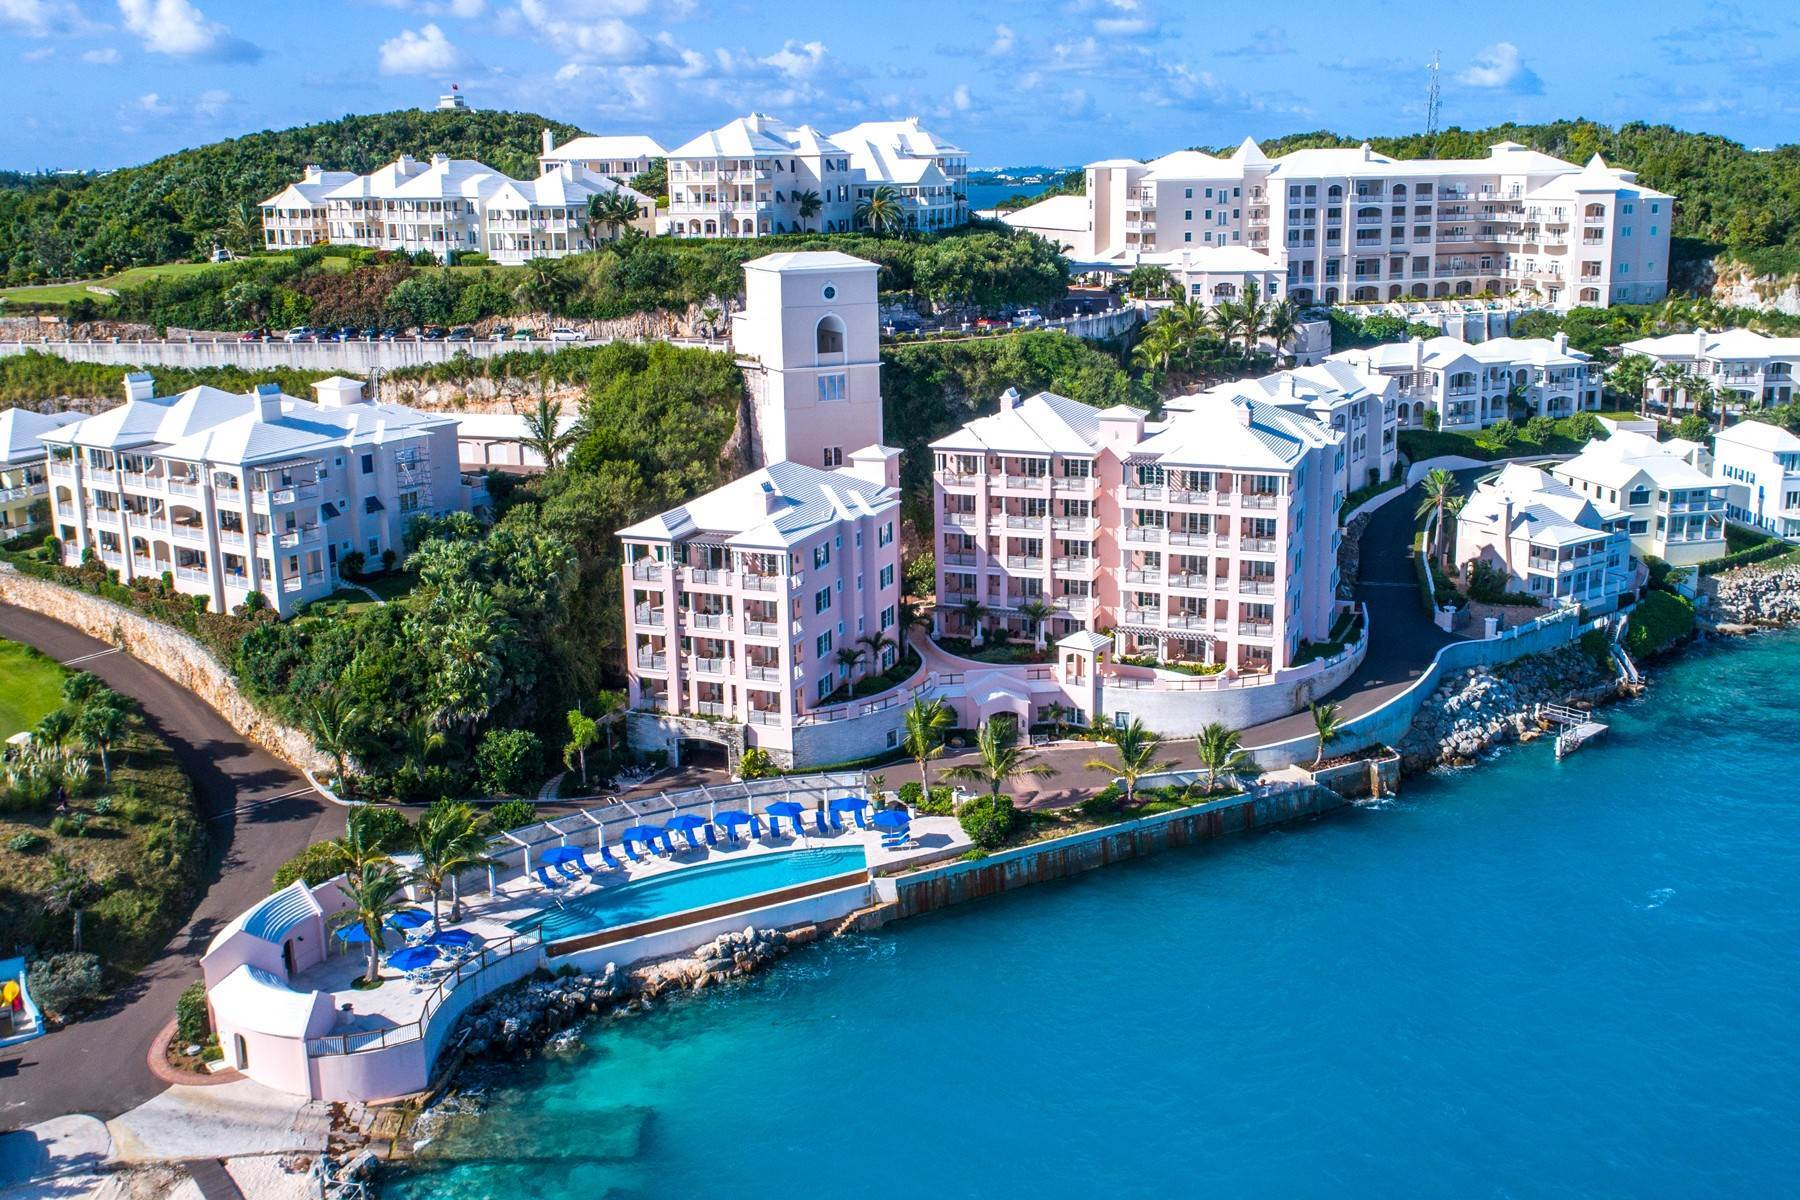 2. Condo / Townhouse / Flat for Sale at Tucker's Point Harbour Court - 2 Bedroom 19 Harbour Drive Hamilton Parish, HS02 Bermuda